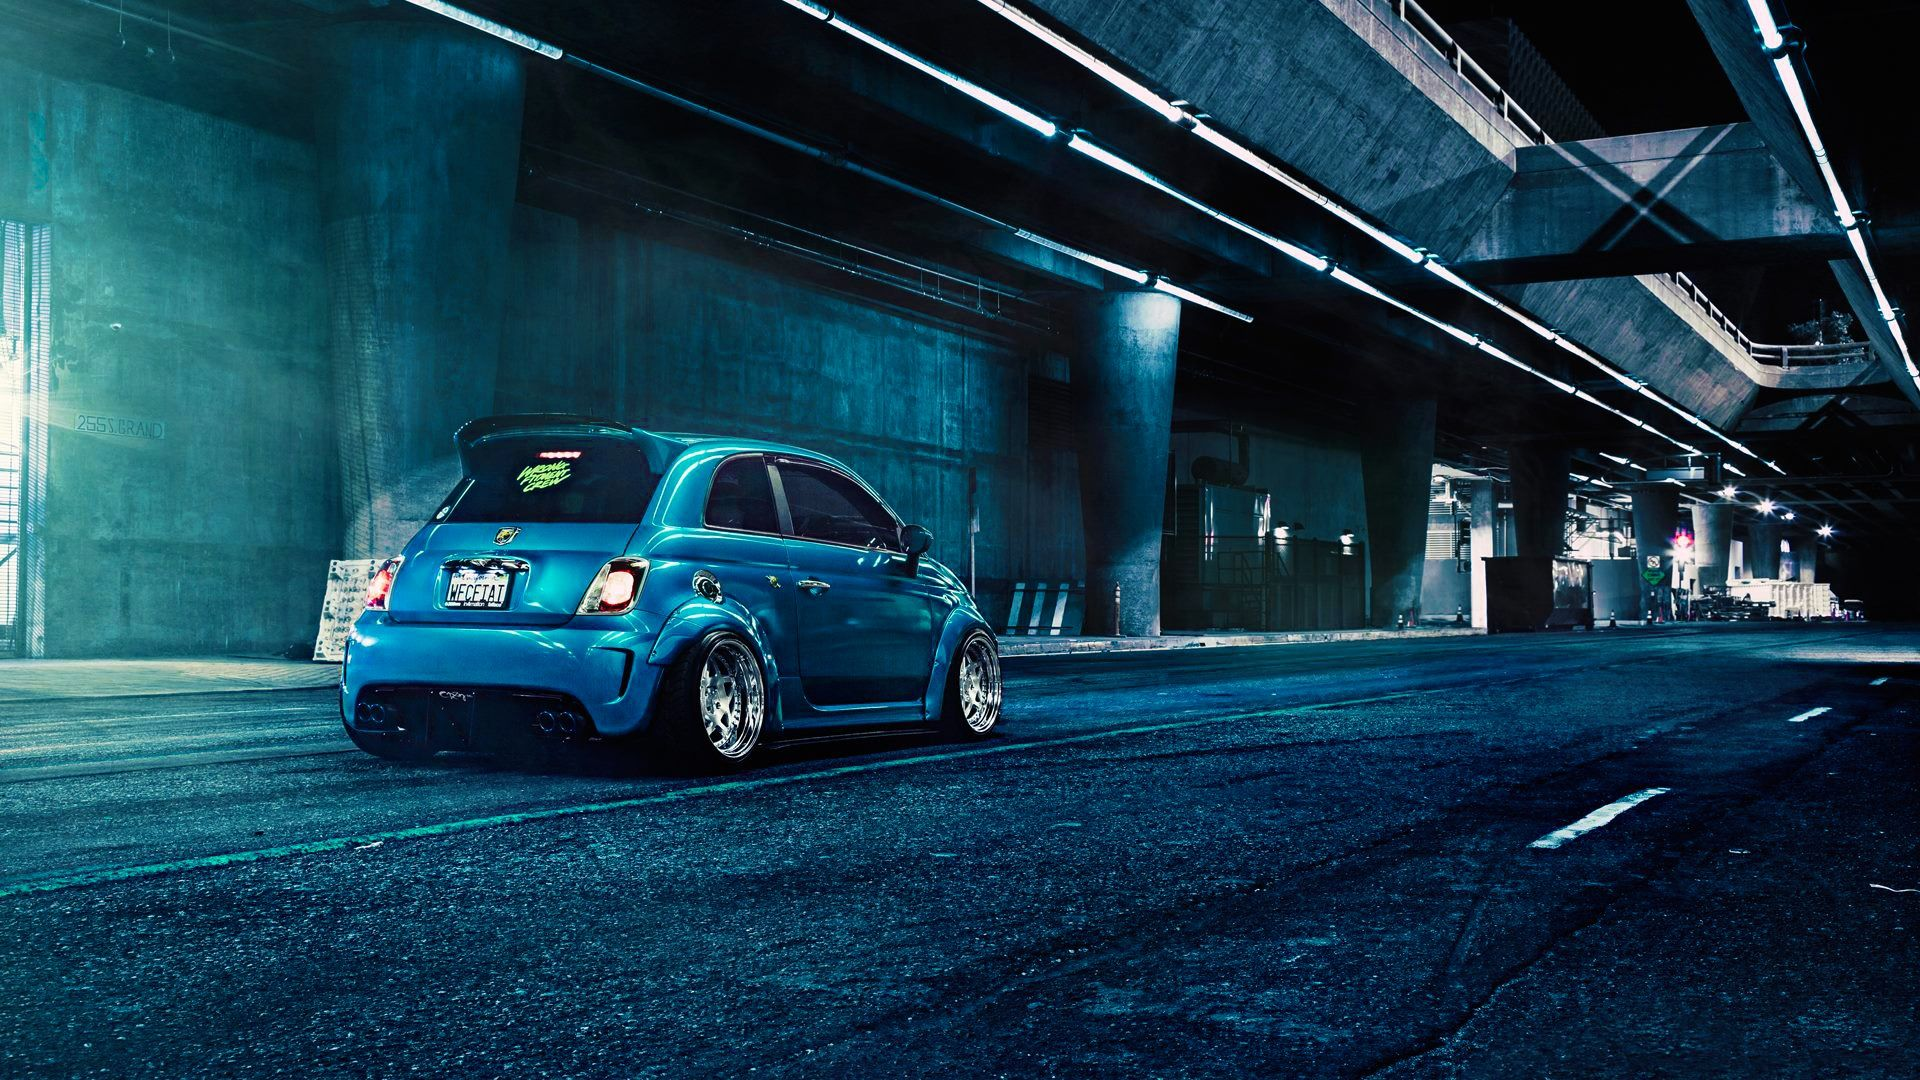 Fiat 500 Abarth Hd Car Wallpapers And Backgrounds